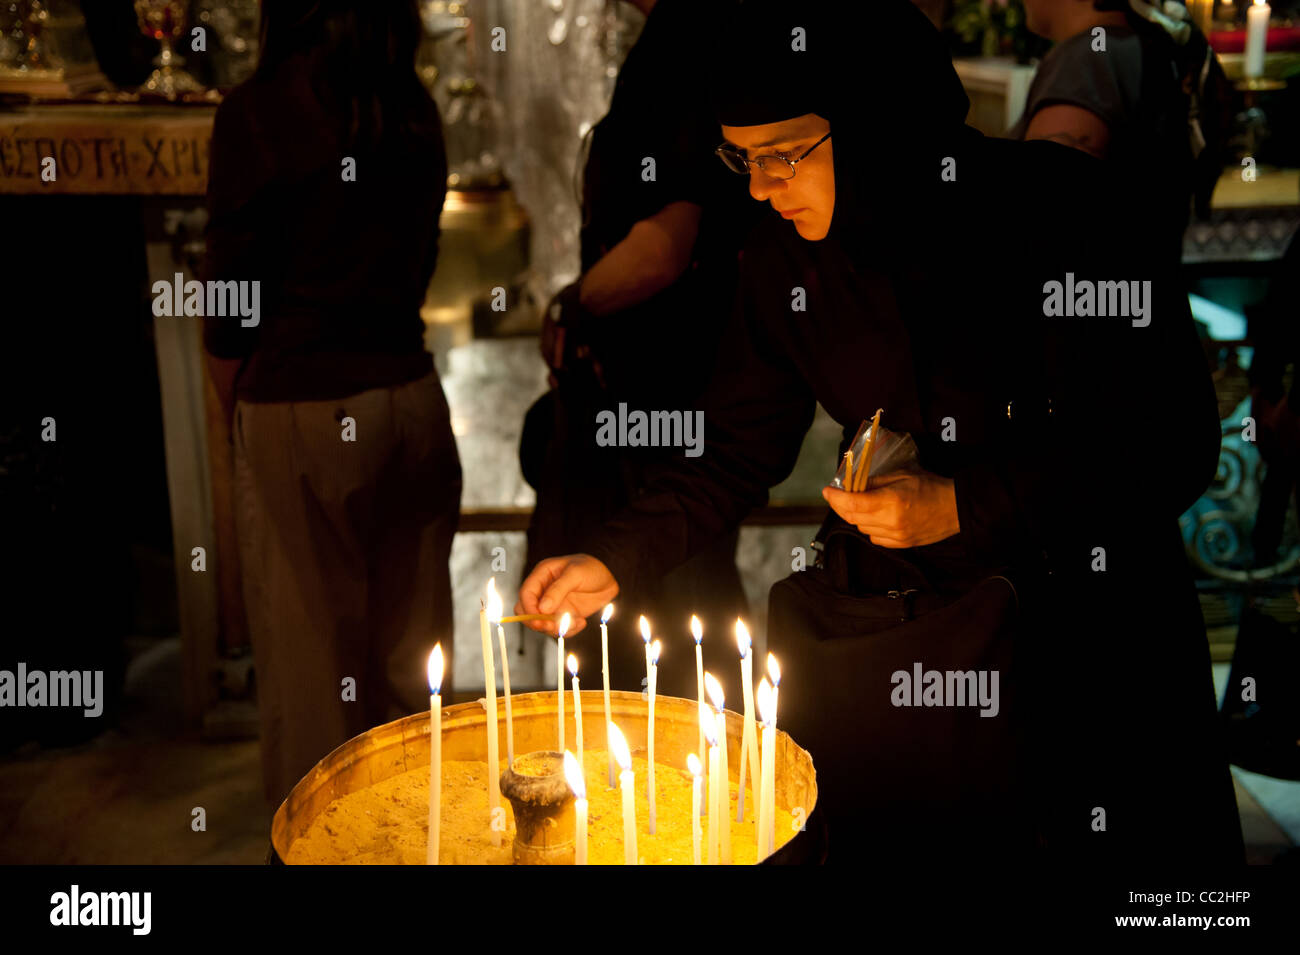 A nun lights candles in the Church of the Holy Sepulchre, traditional site of the death, burial, and resurrection - Stock Image